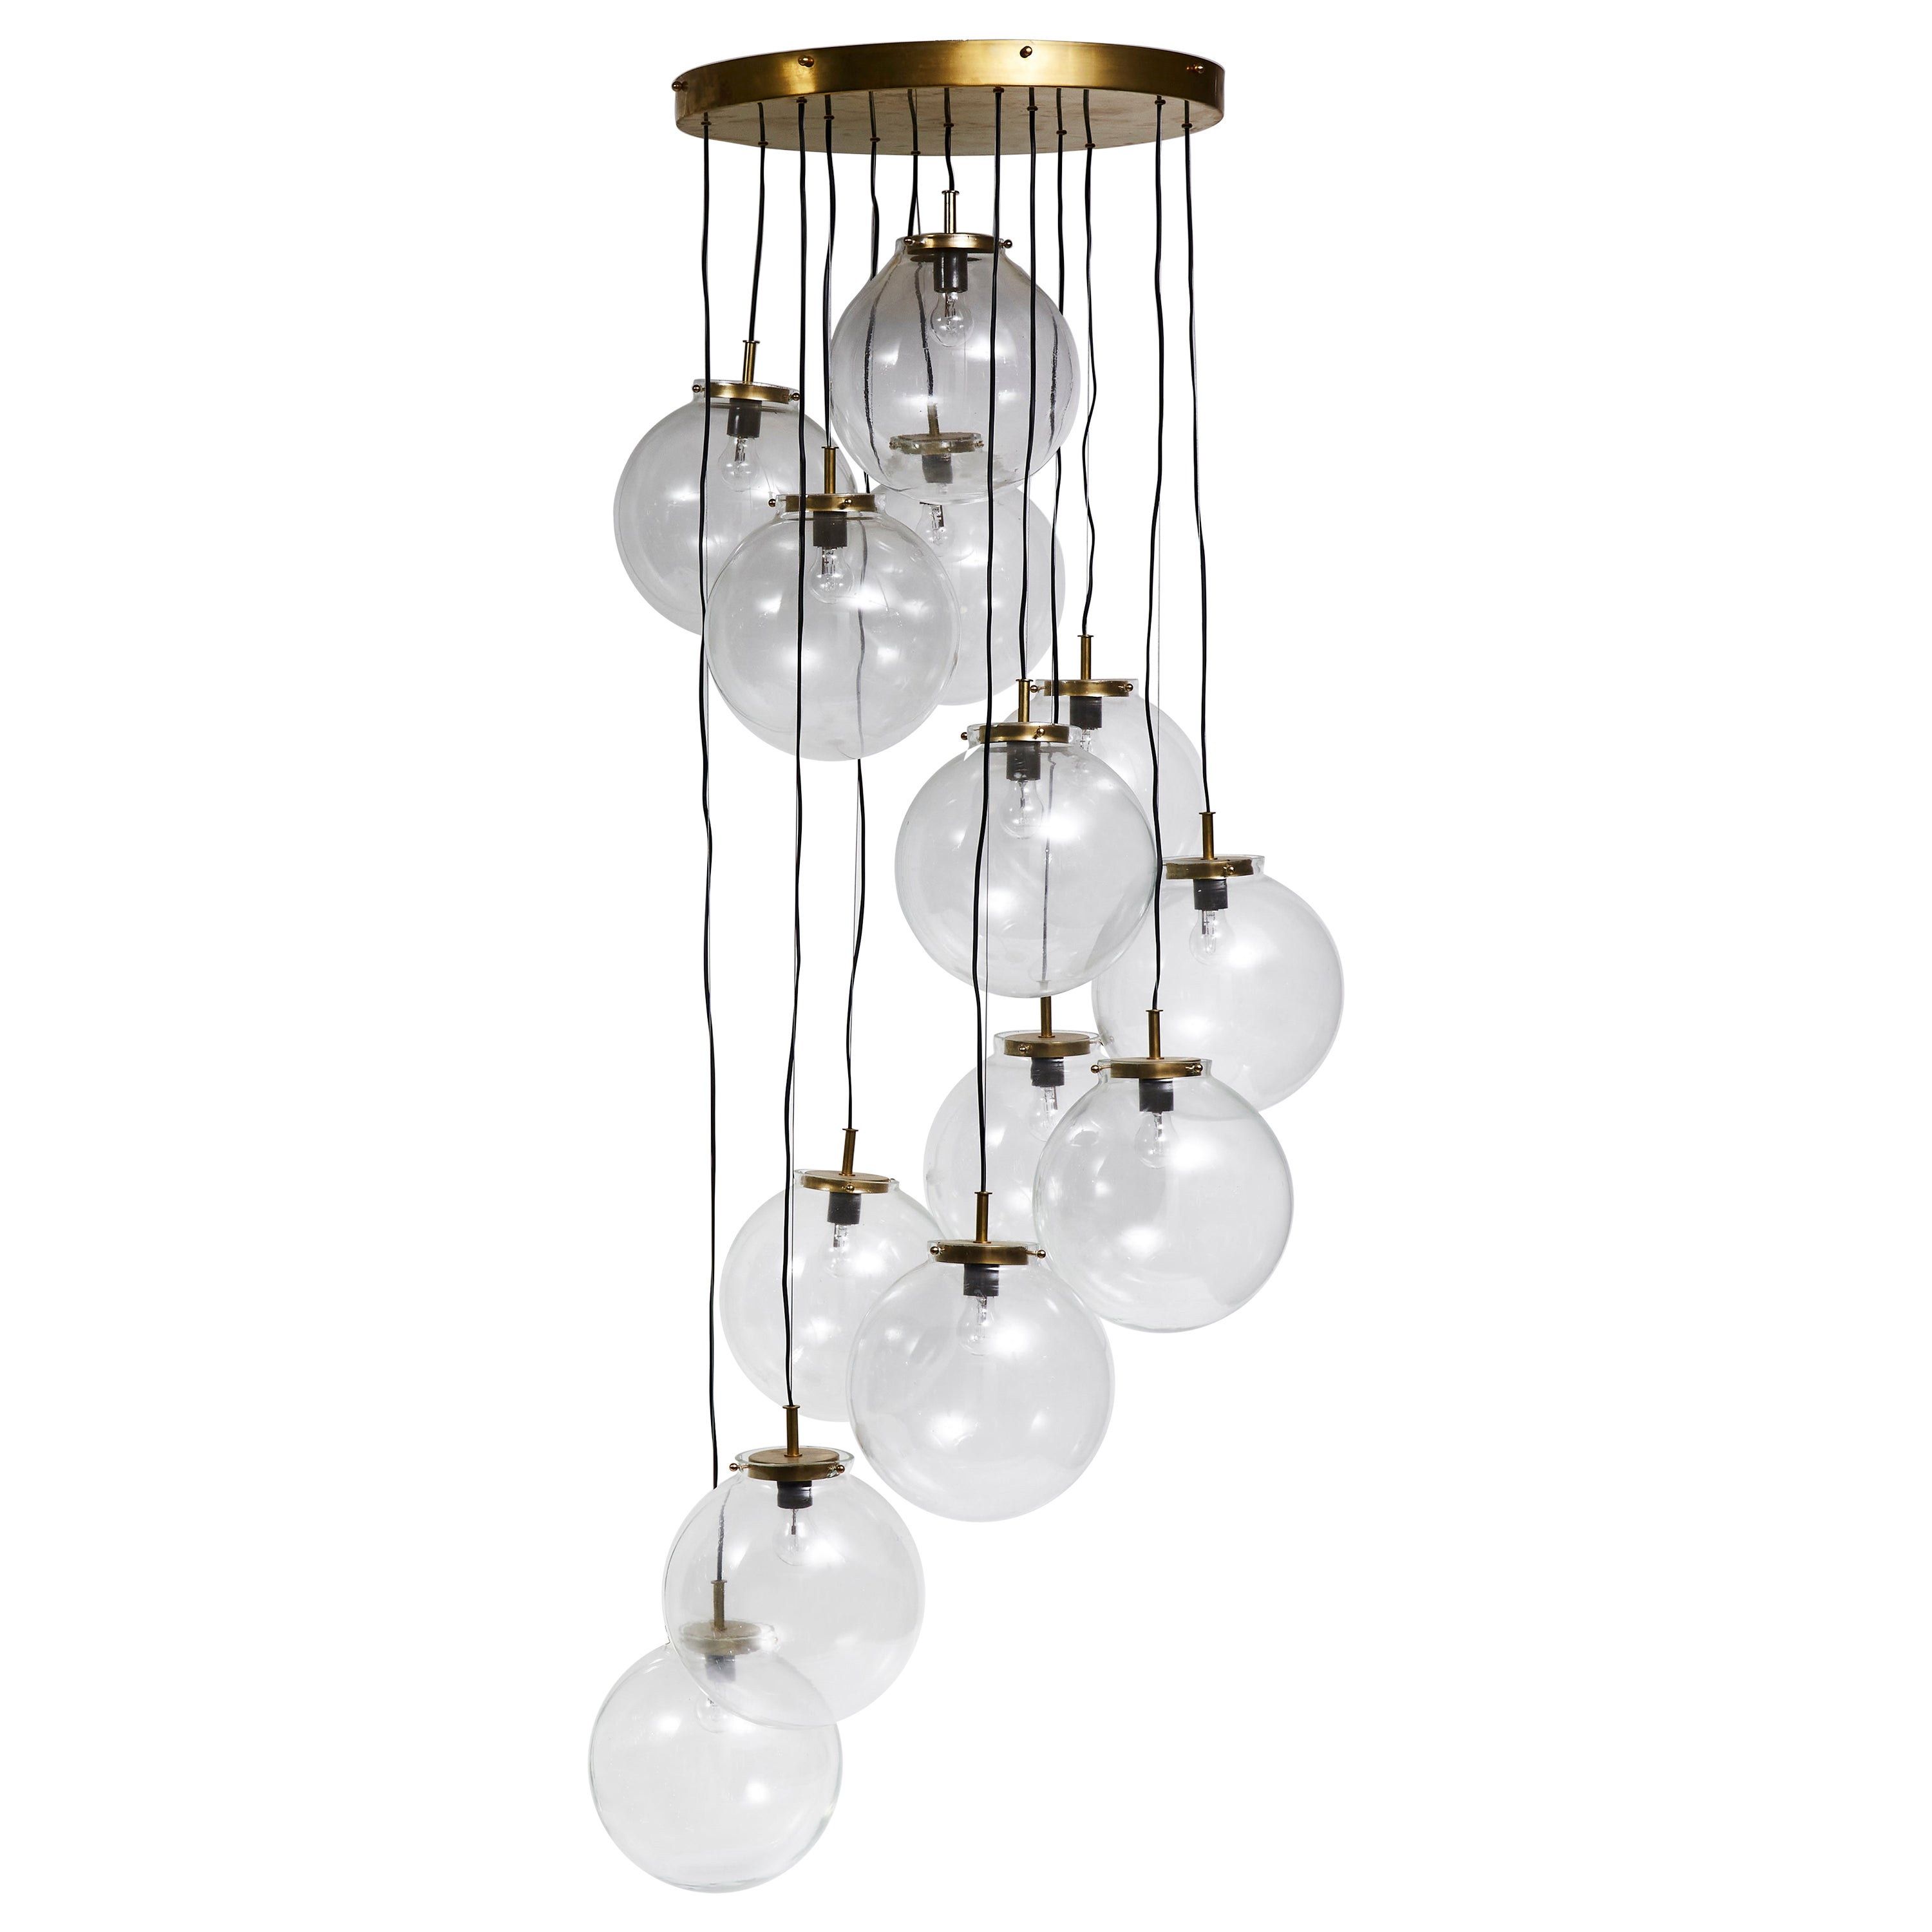 Murano Glass Suspension